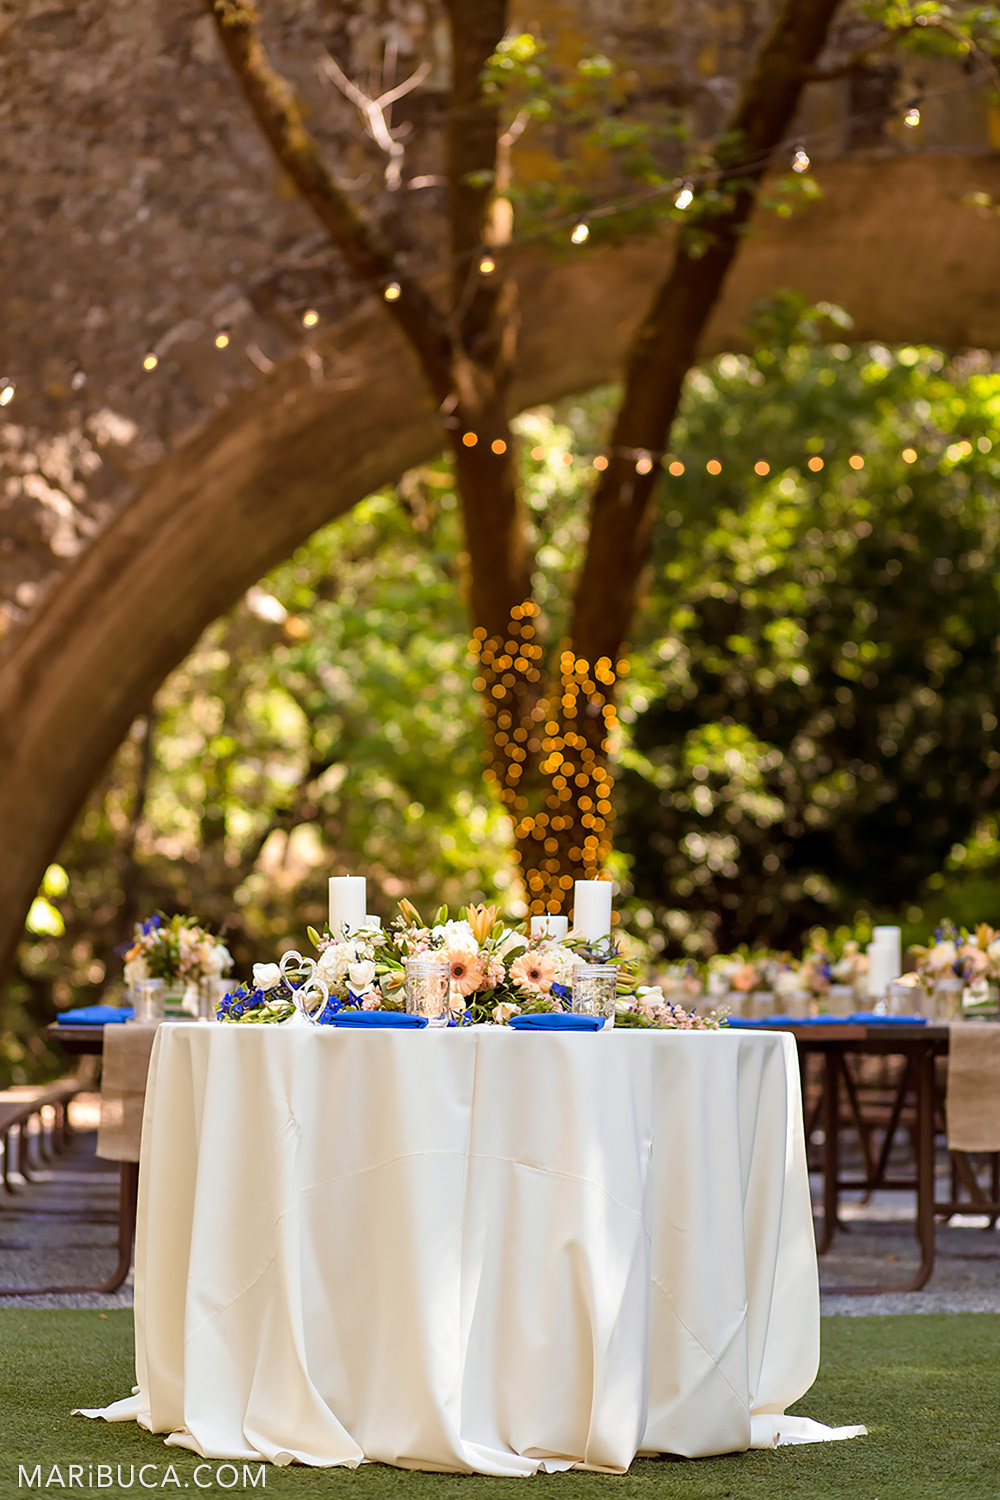 Wedding table decorations surrounded the guests tables and orange light element in the background in the Saratoga Springs Venue